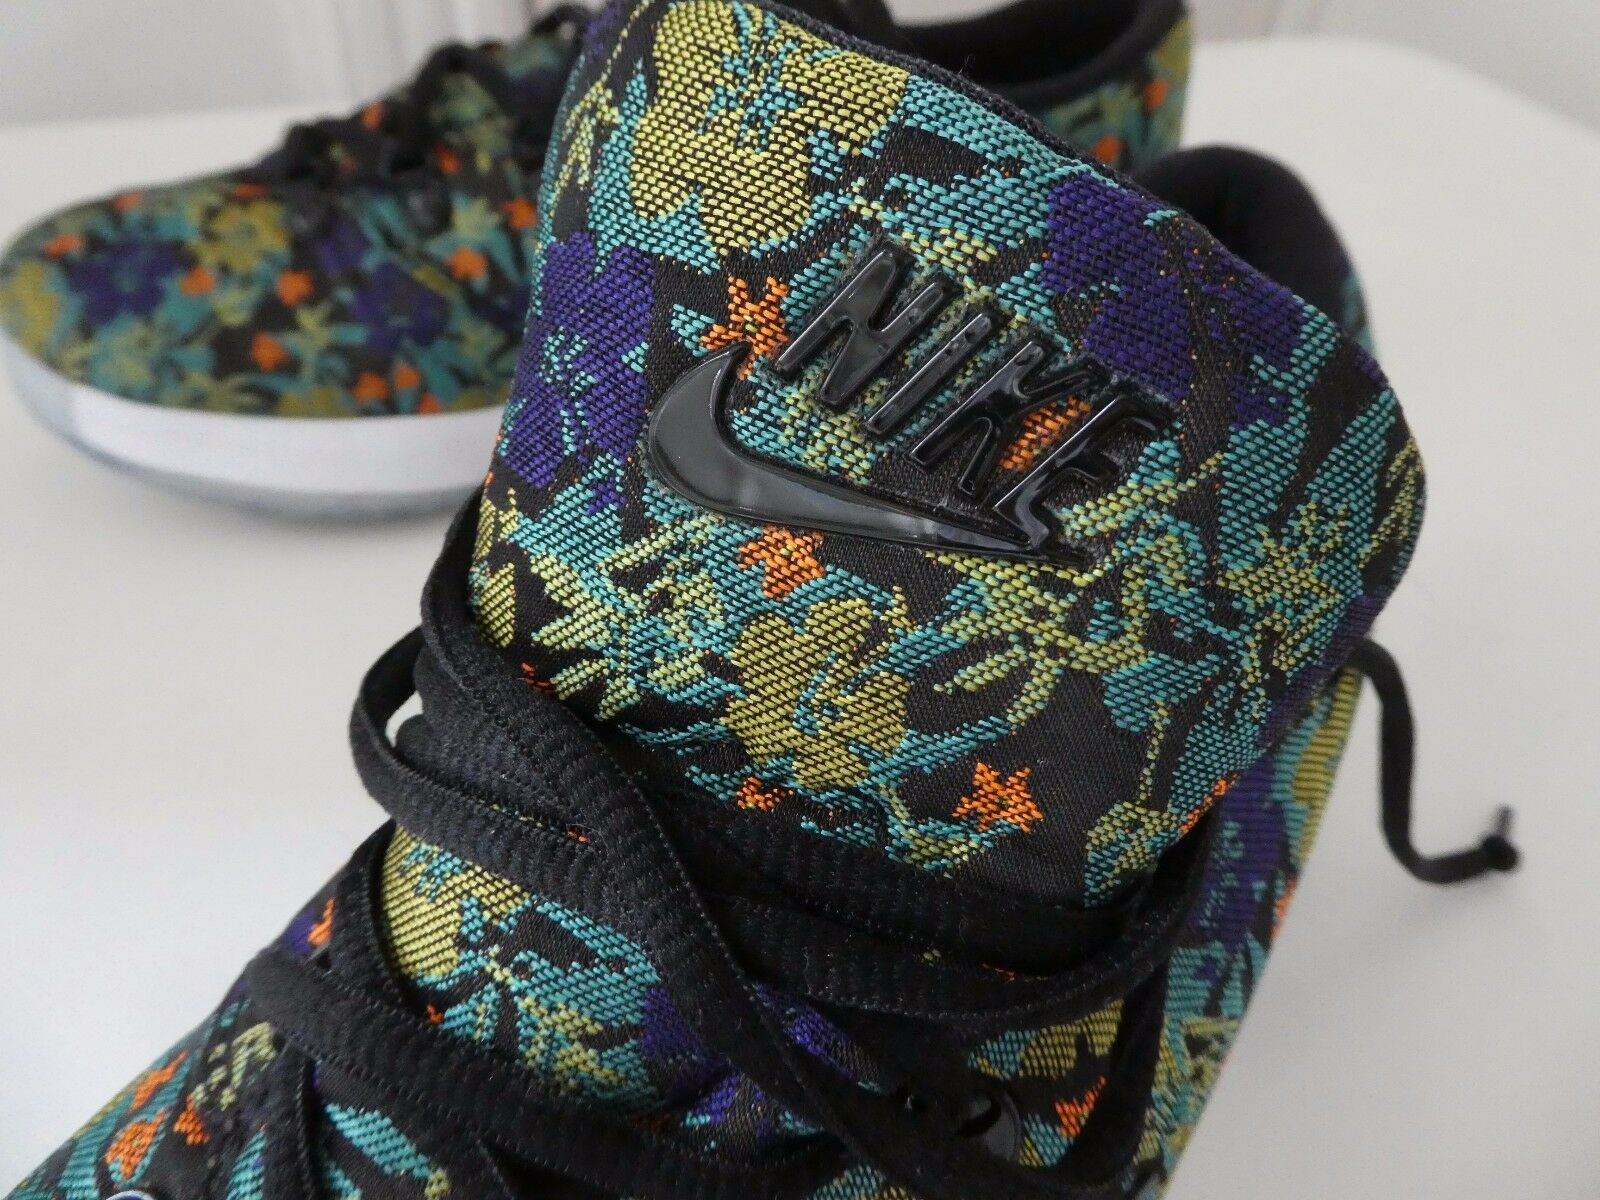 06e72f8d00 Nike Kevin Durant Limited Edition KD 6 Floral, Size US 9 Eur 42.5, 652120